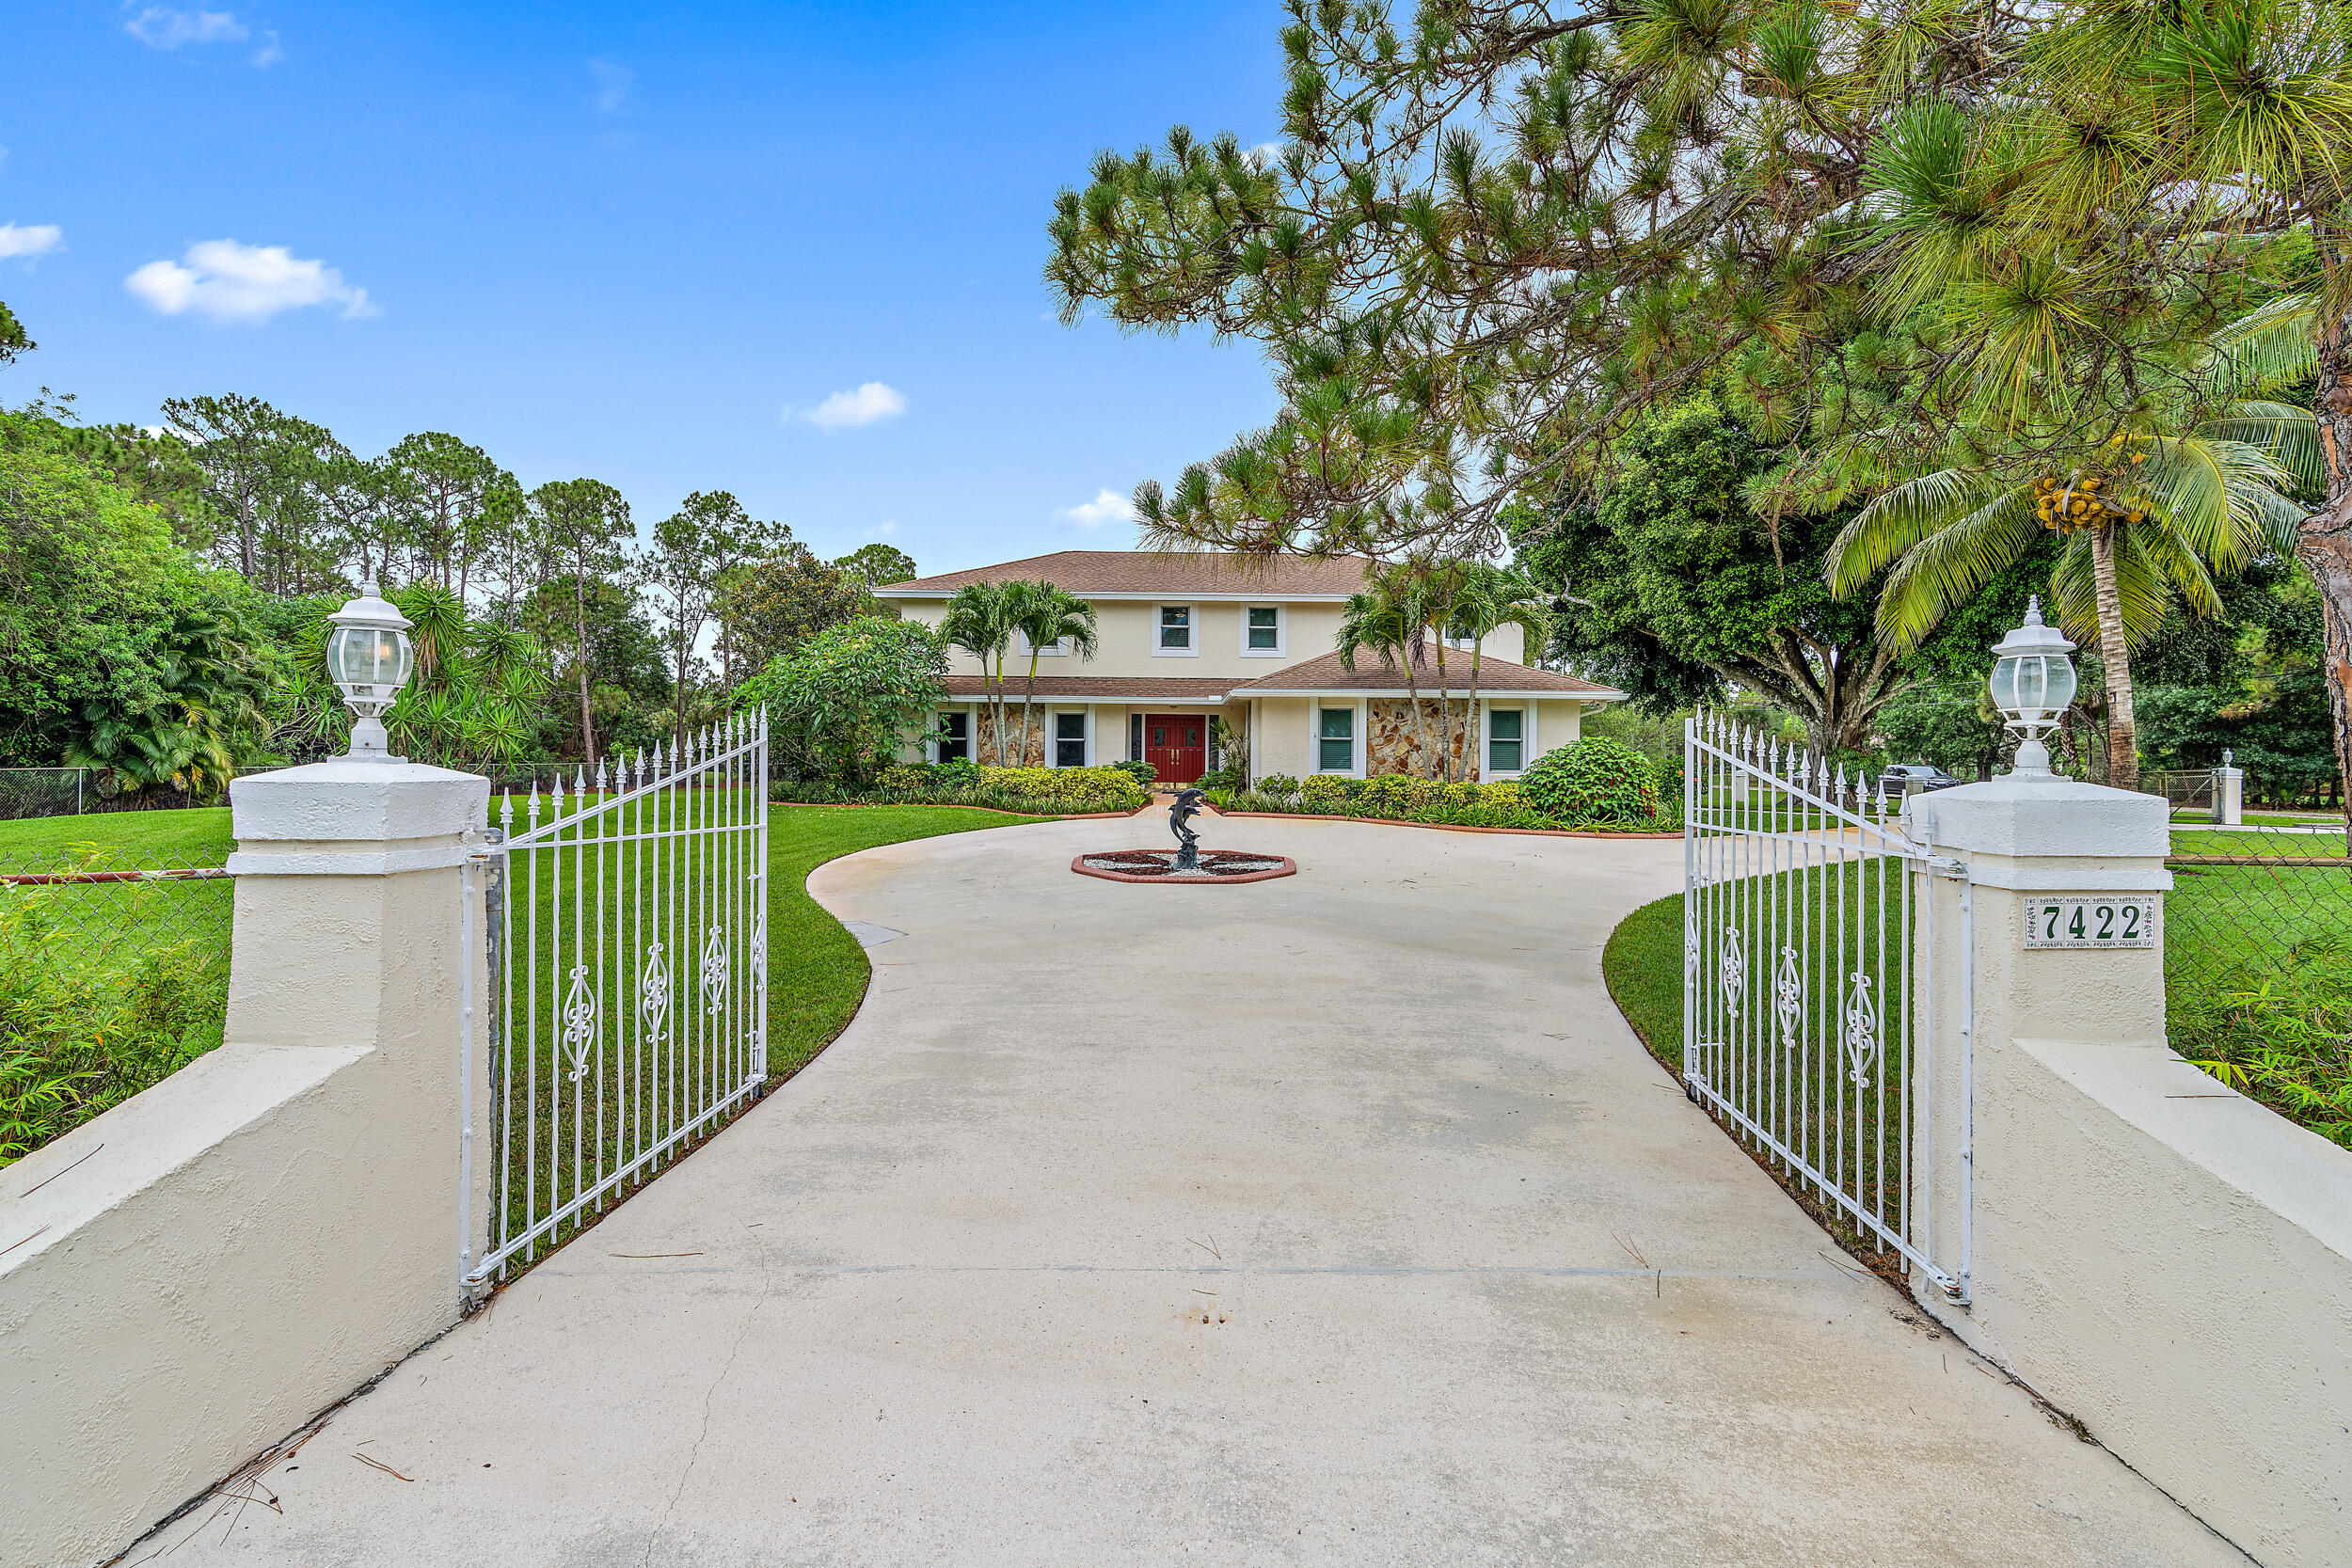 7422  154th Court  For Sale 10725988, FL